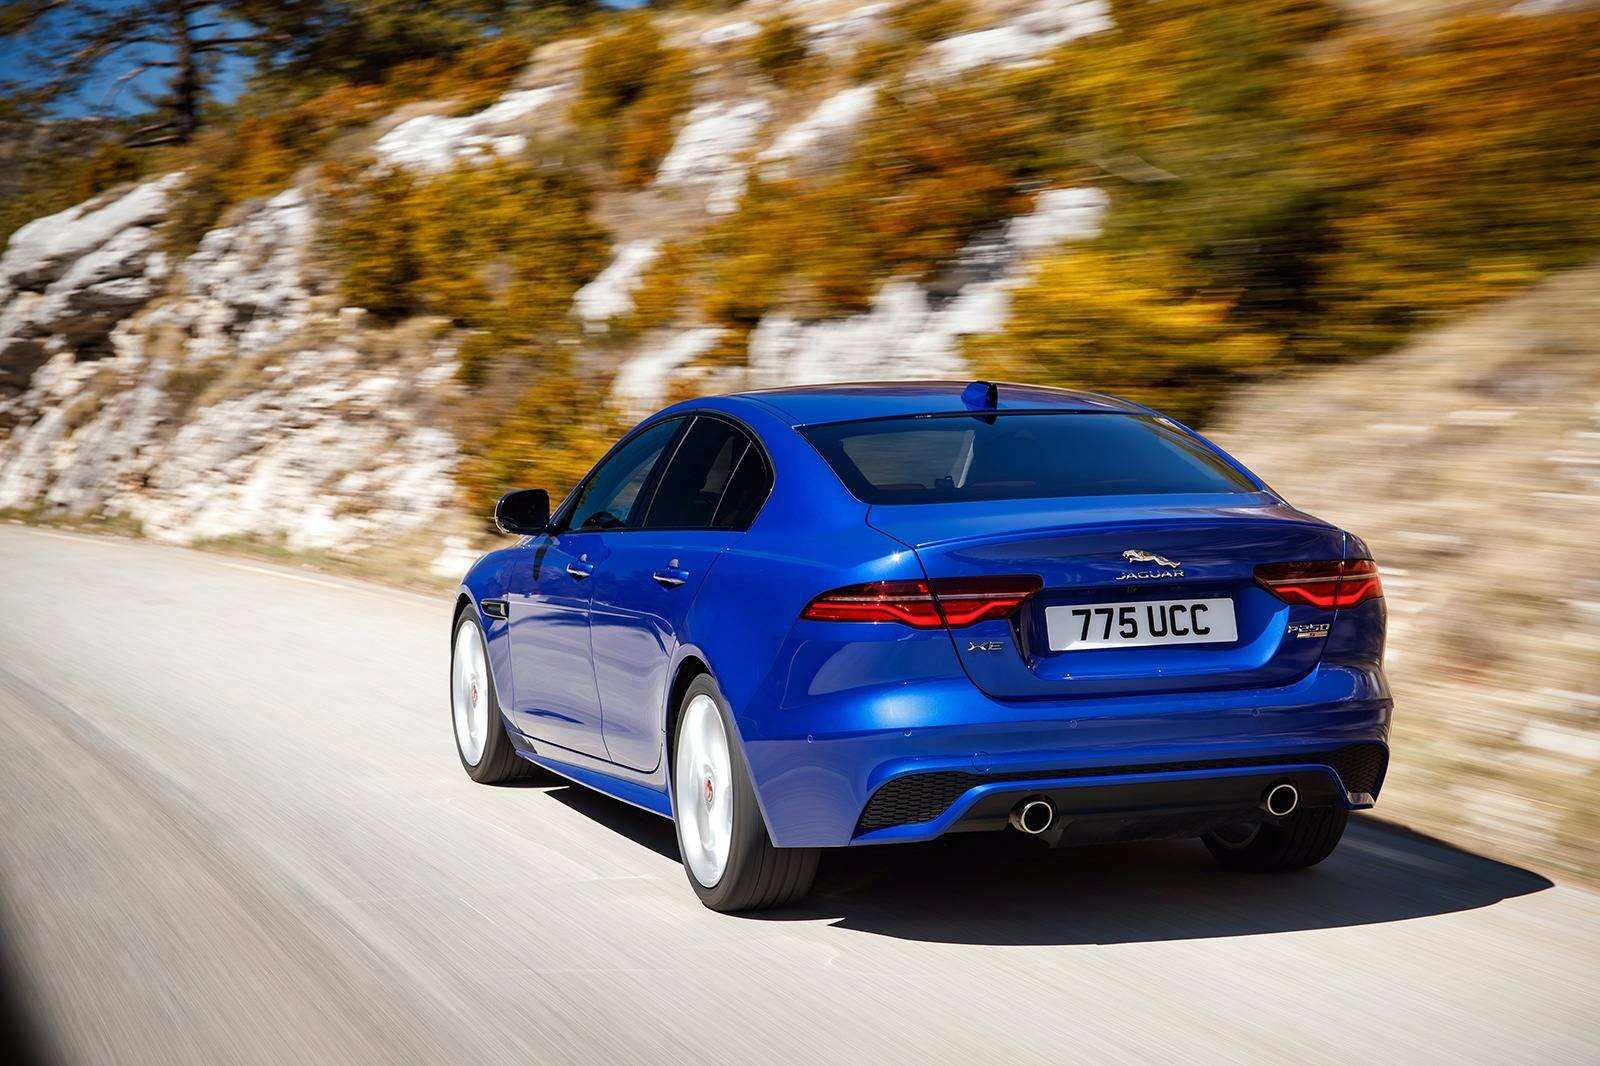 73 The Best Jaguar Xe 2020 Price Design And Review